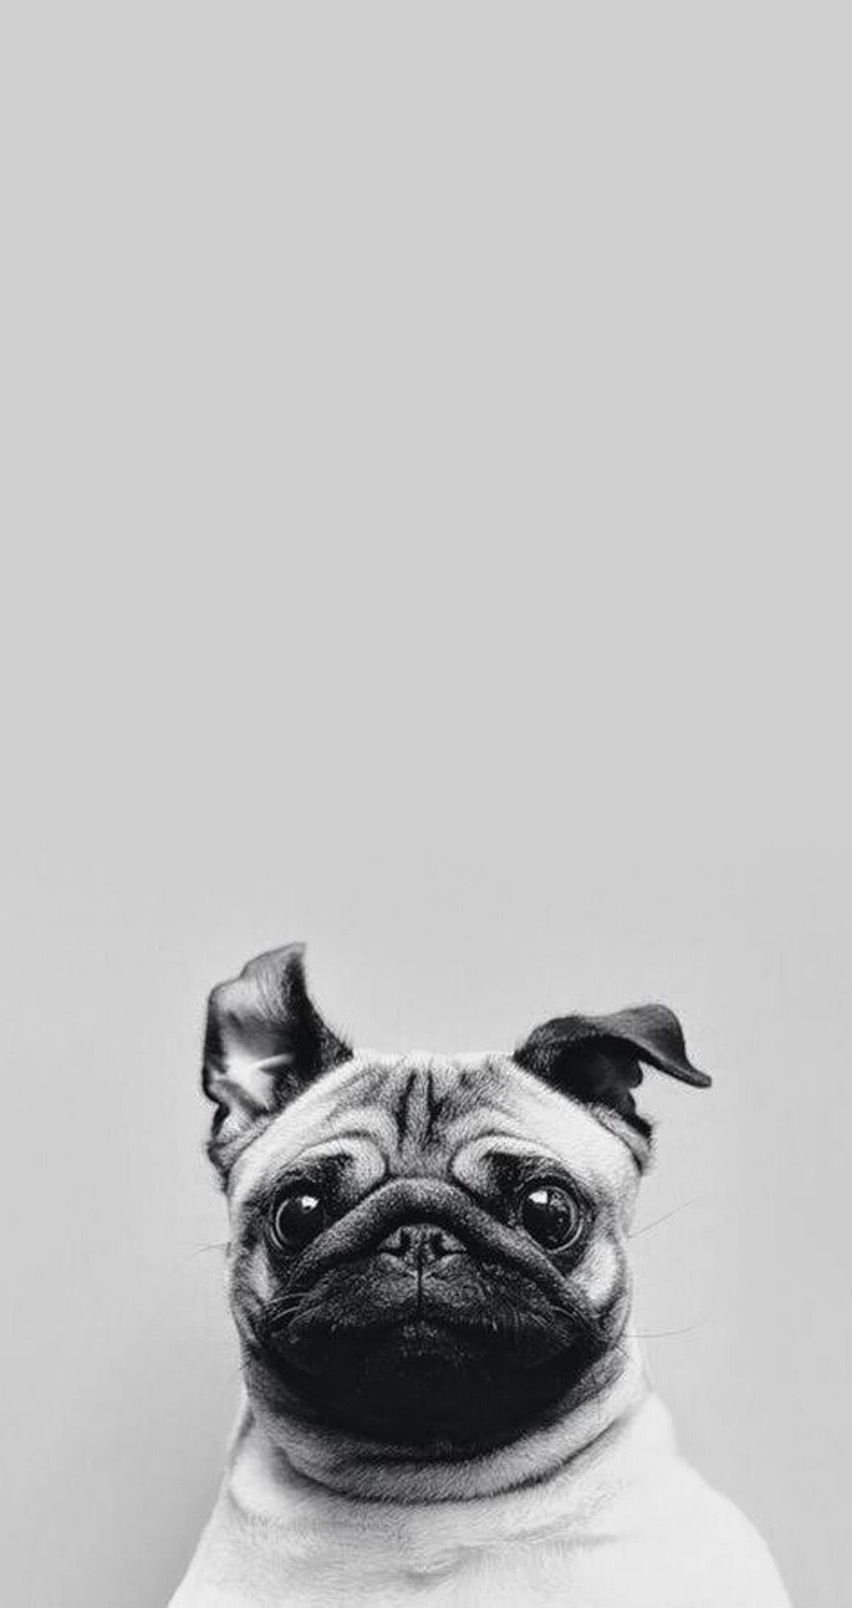 Cute-pug-Tap-for-see-Collection-of-Cute-Pug-Dog-HD-Wallpapers-@mobile-Wallpapers-for-iPhone-wallpaper-wp4805653